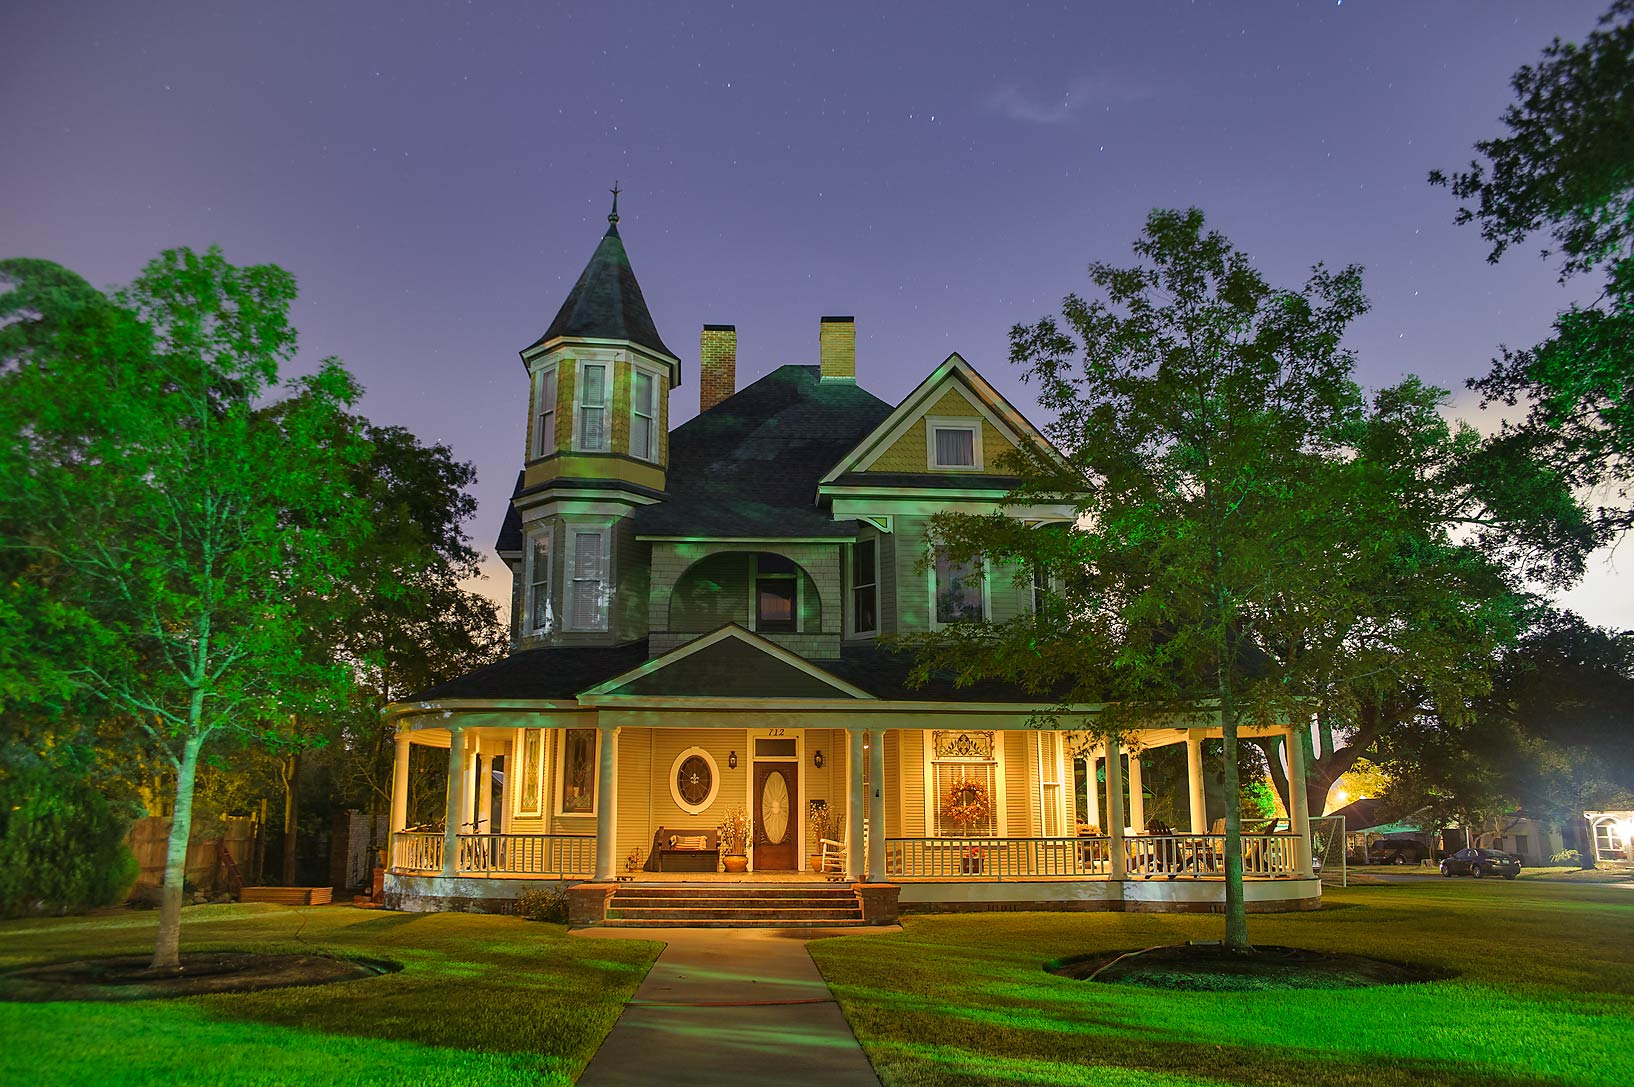 McMichael-Wilson House (1904) at 712 East 30th St.. Bryan, Texas